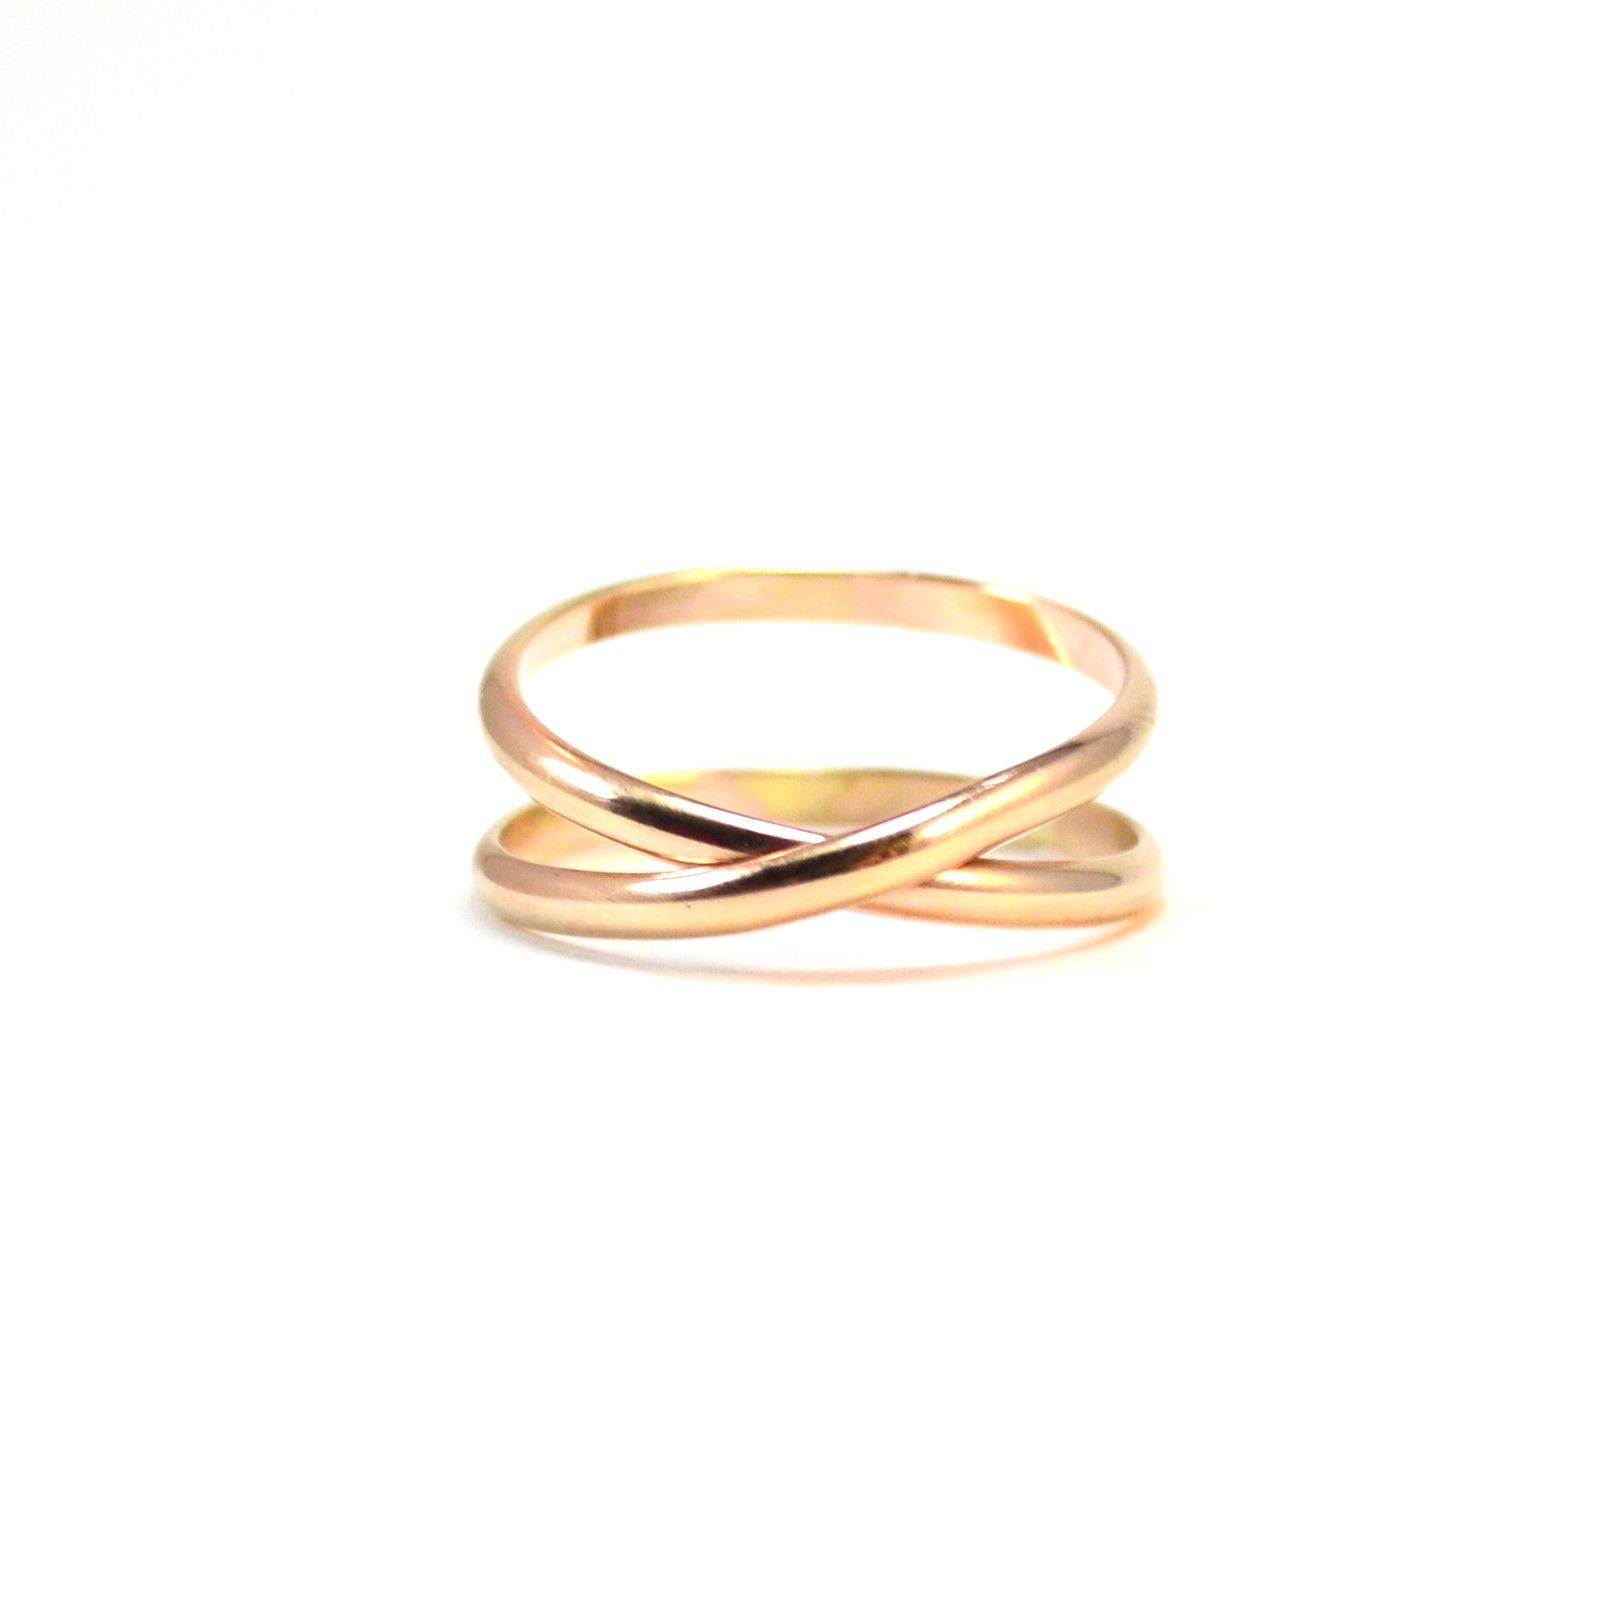 couer overstock ring rose gold de today pink infinity shipping free bands band product double watches jewelry diamond tdw